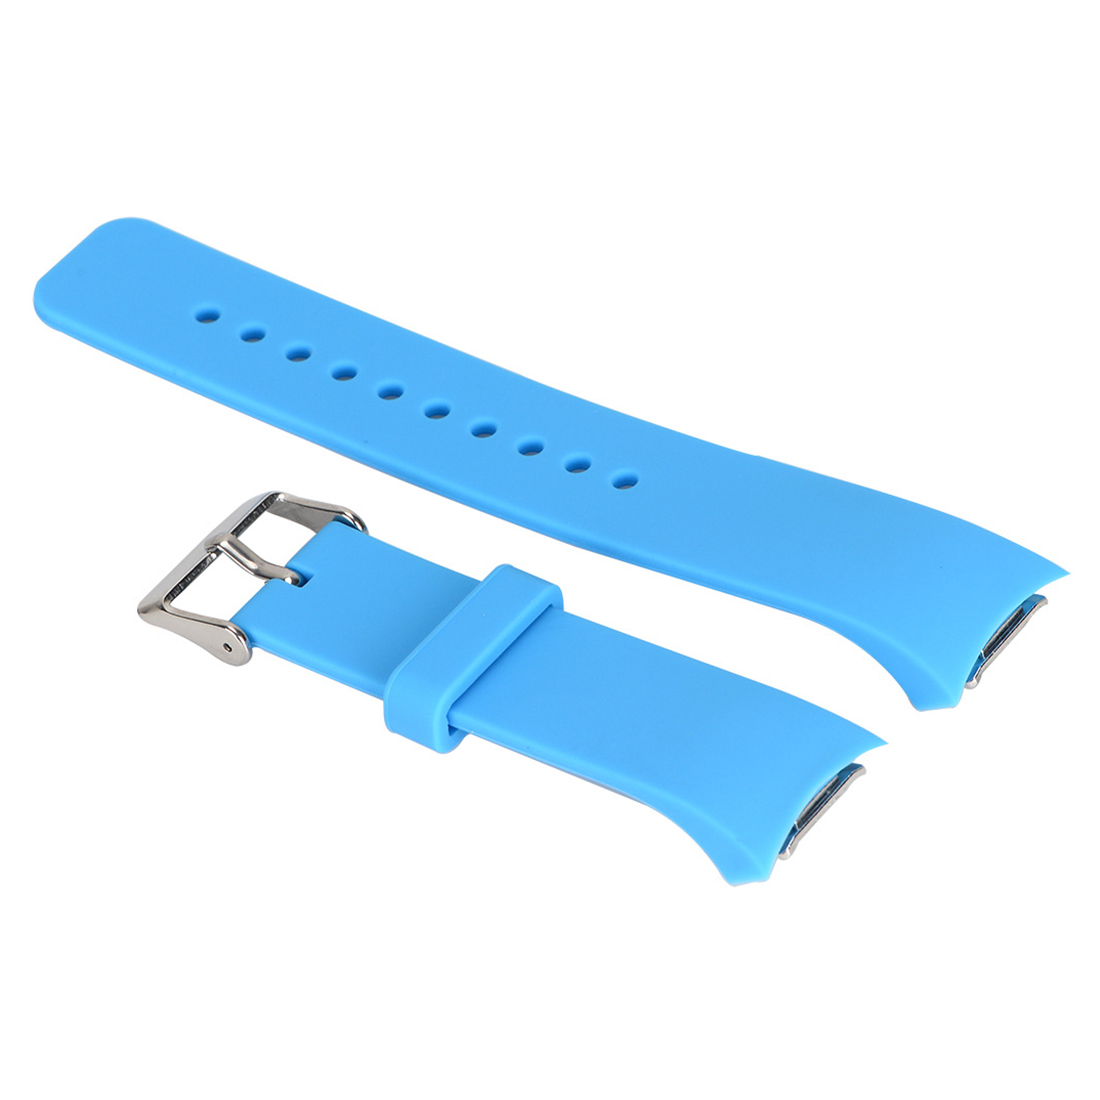 Luxury Silicone Watch Band Strap for Samsung Galaxy S2 Gear SM-R720 Sky blue 2016 silicone rubber watch band for samsung galaxy gear s2 sm r720 replacement smartwatch bands strap bracelet with patterns